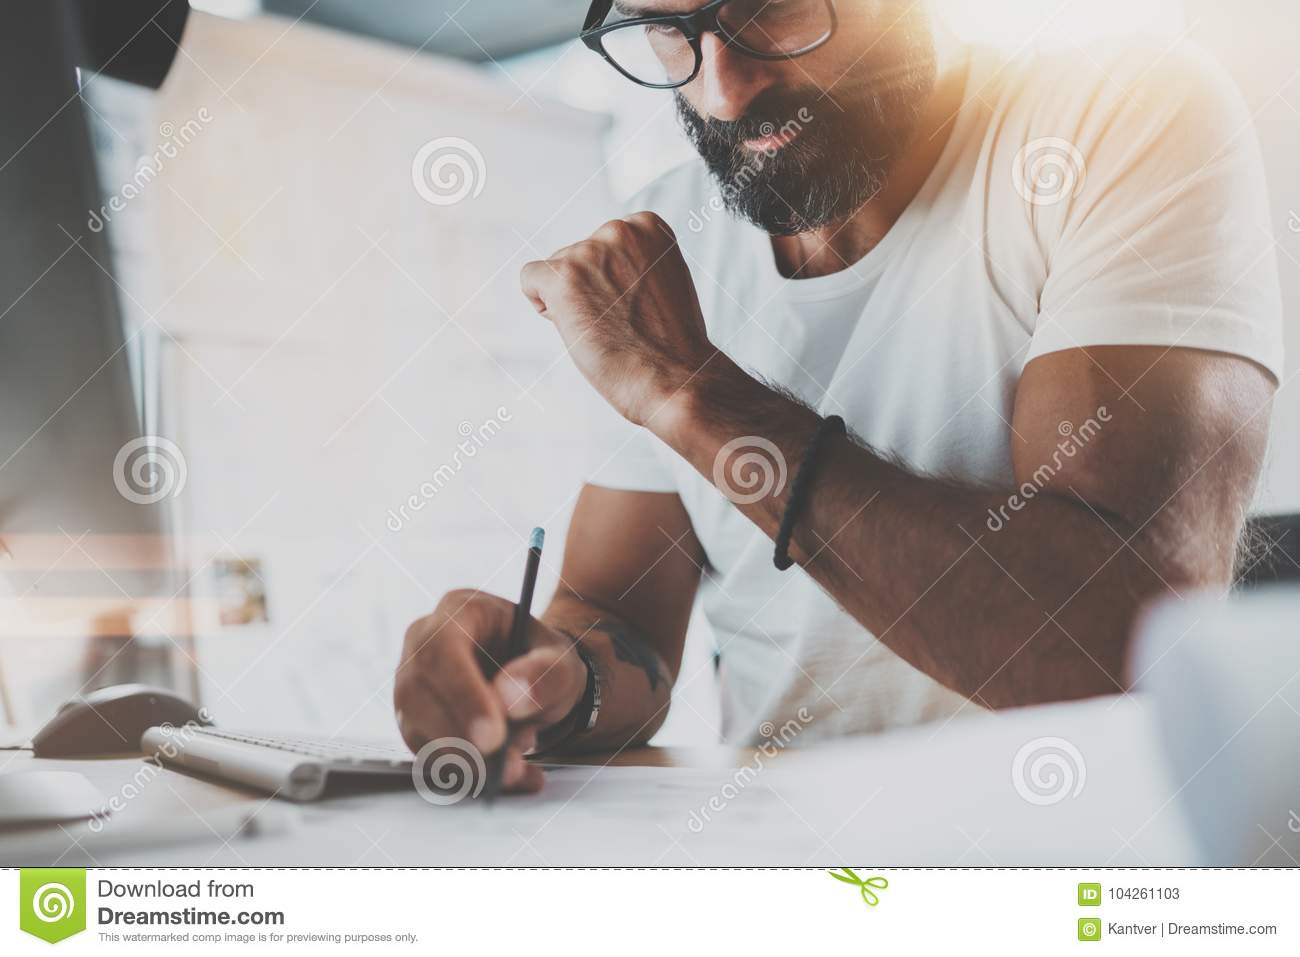 Pensive bearded designer wearing eye glasses and white tshirt, working at modern loft studio-office.Man drawing scetches